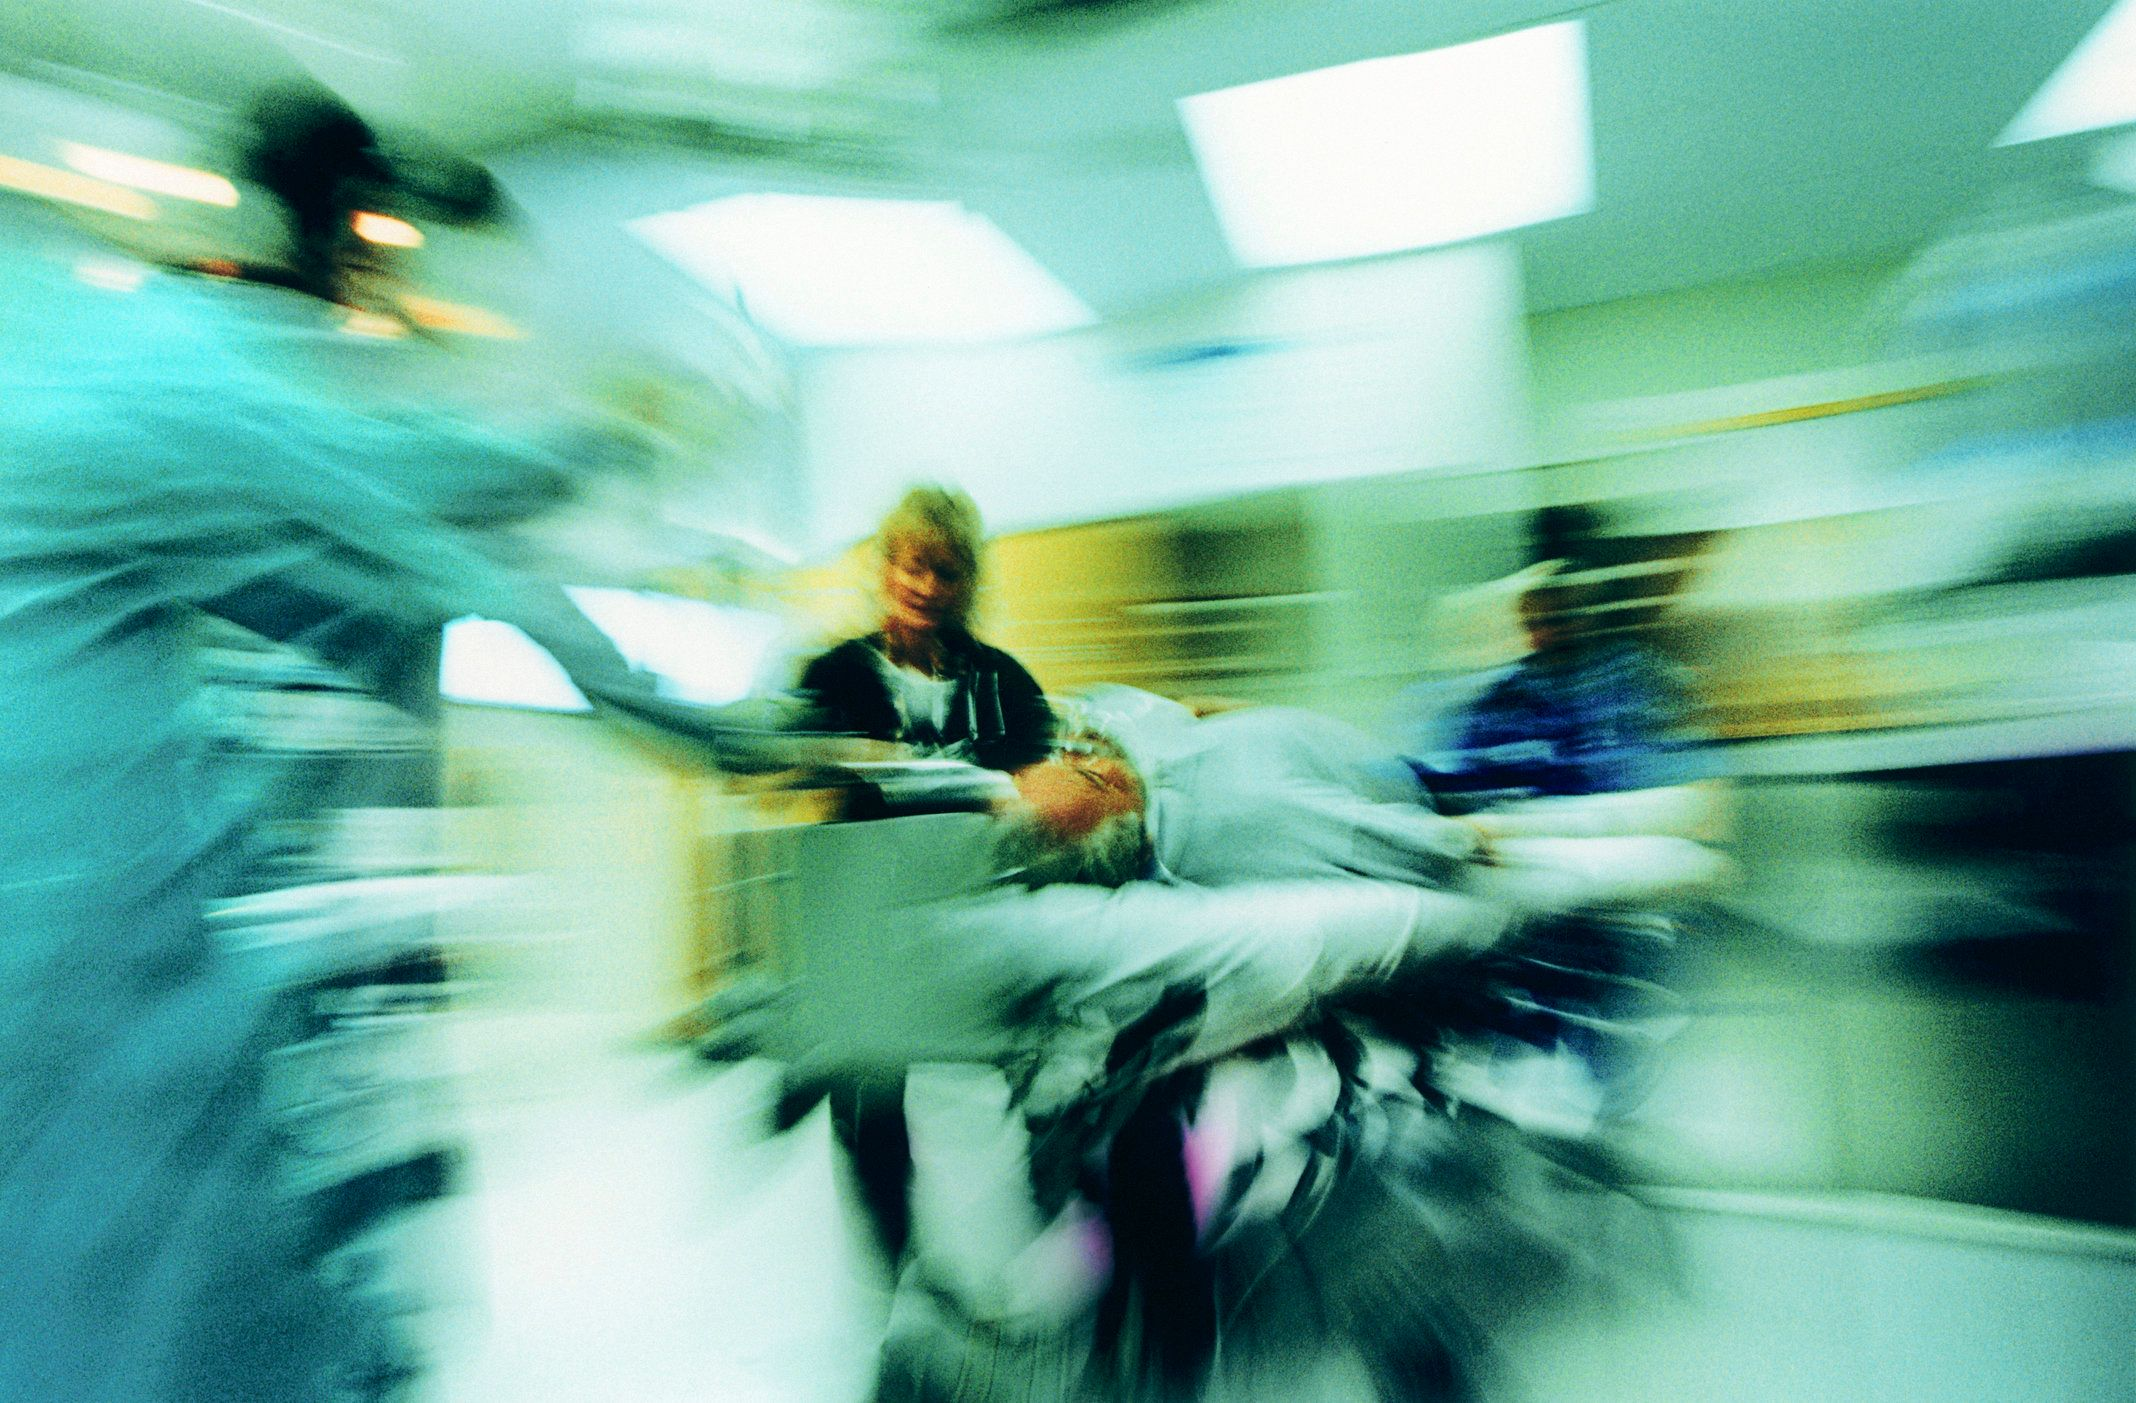 Hospital trauma staff wheeling in patient